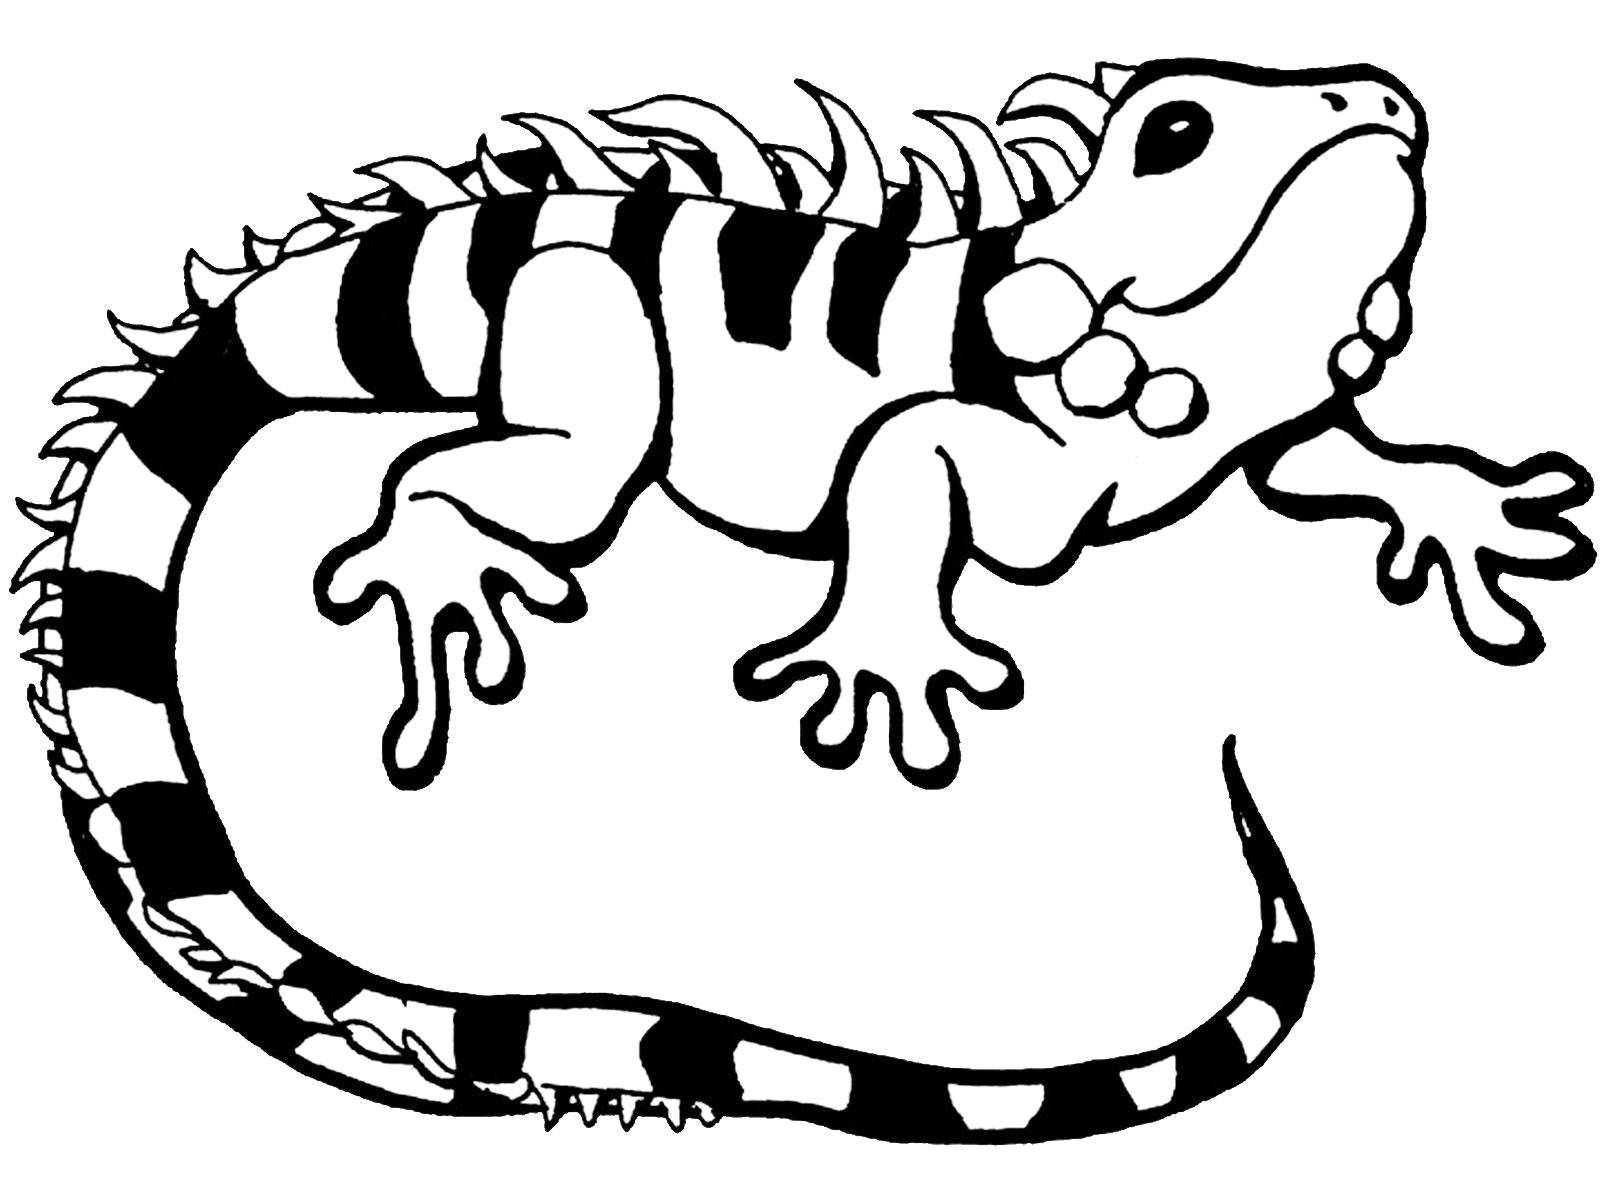 iguana coloring page stained glass pattern of iguana drawing iguana colouring iguana coloring page